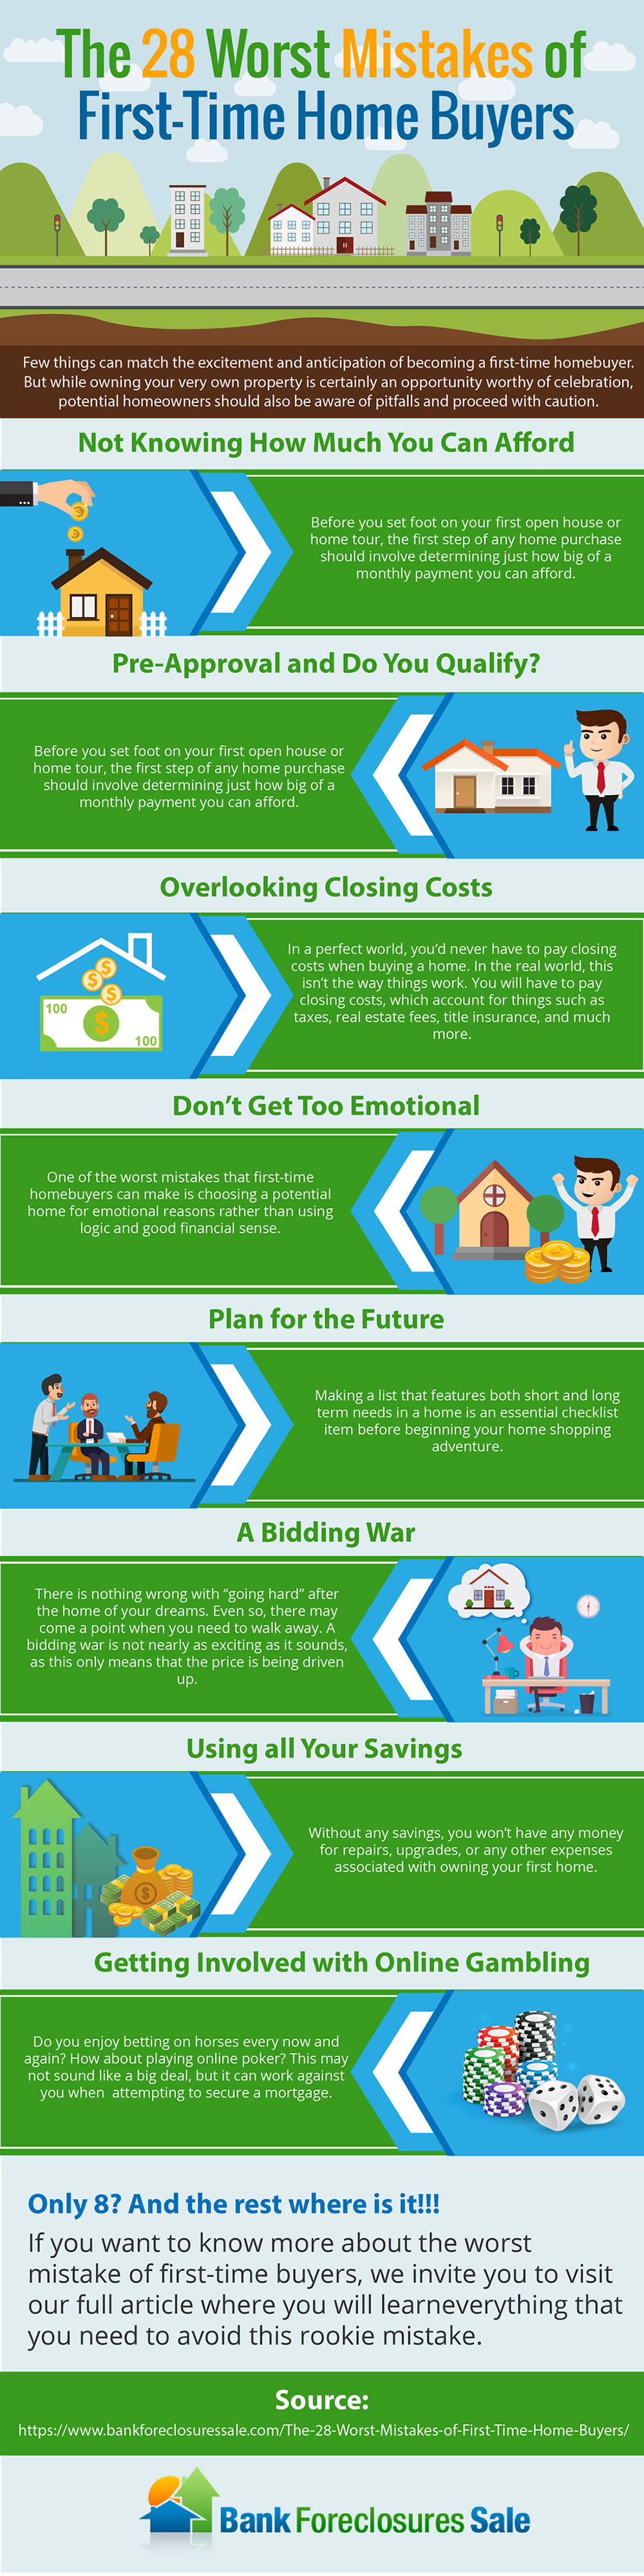 Top Mistakes of First-Time Home Buyers